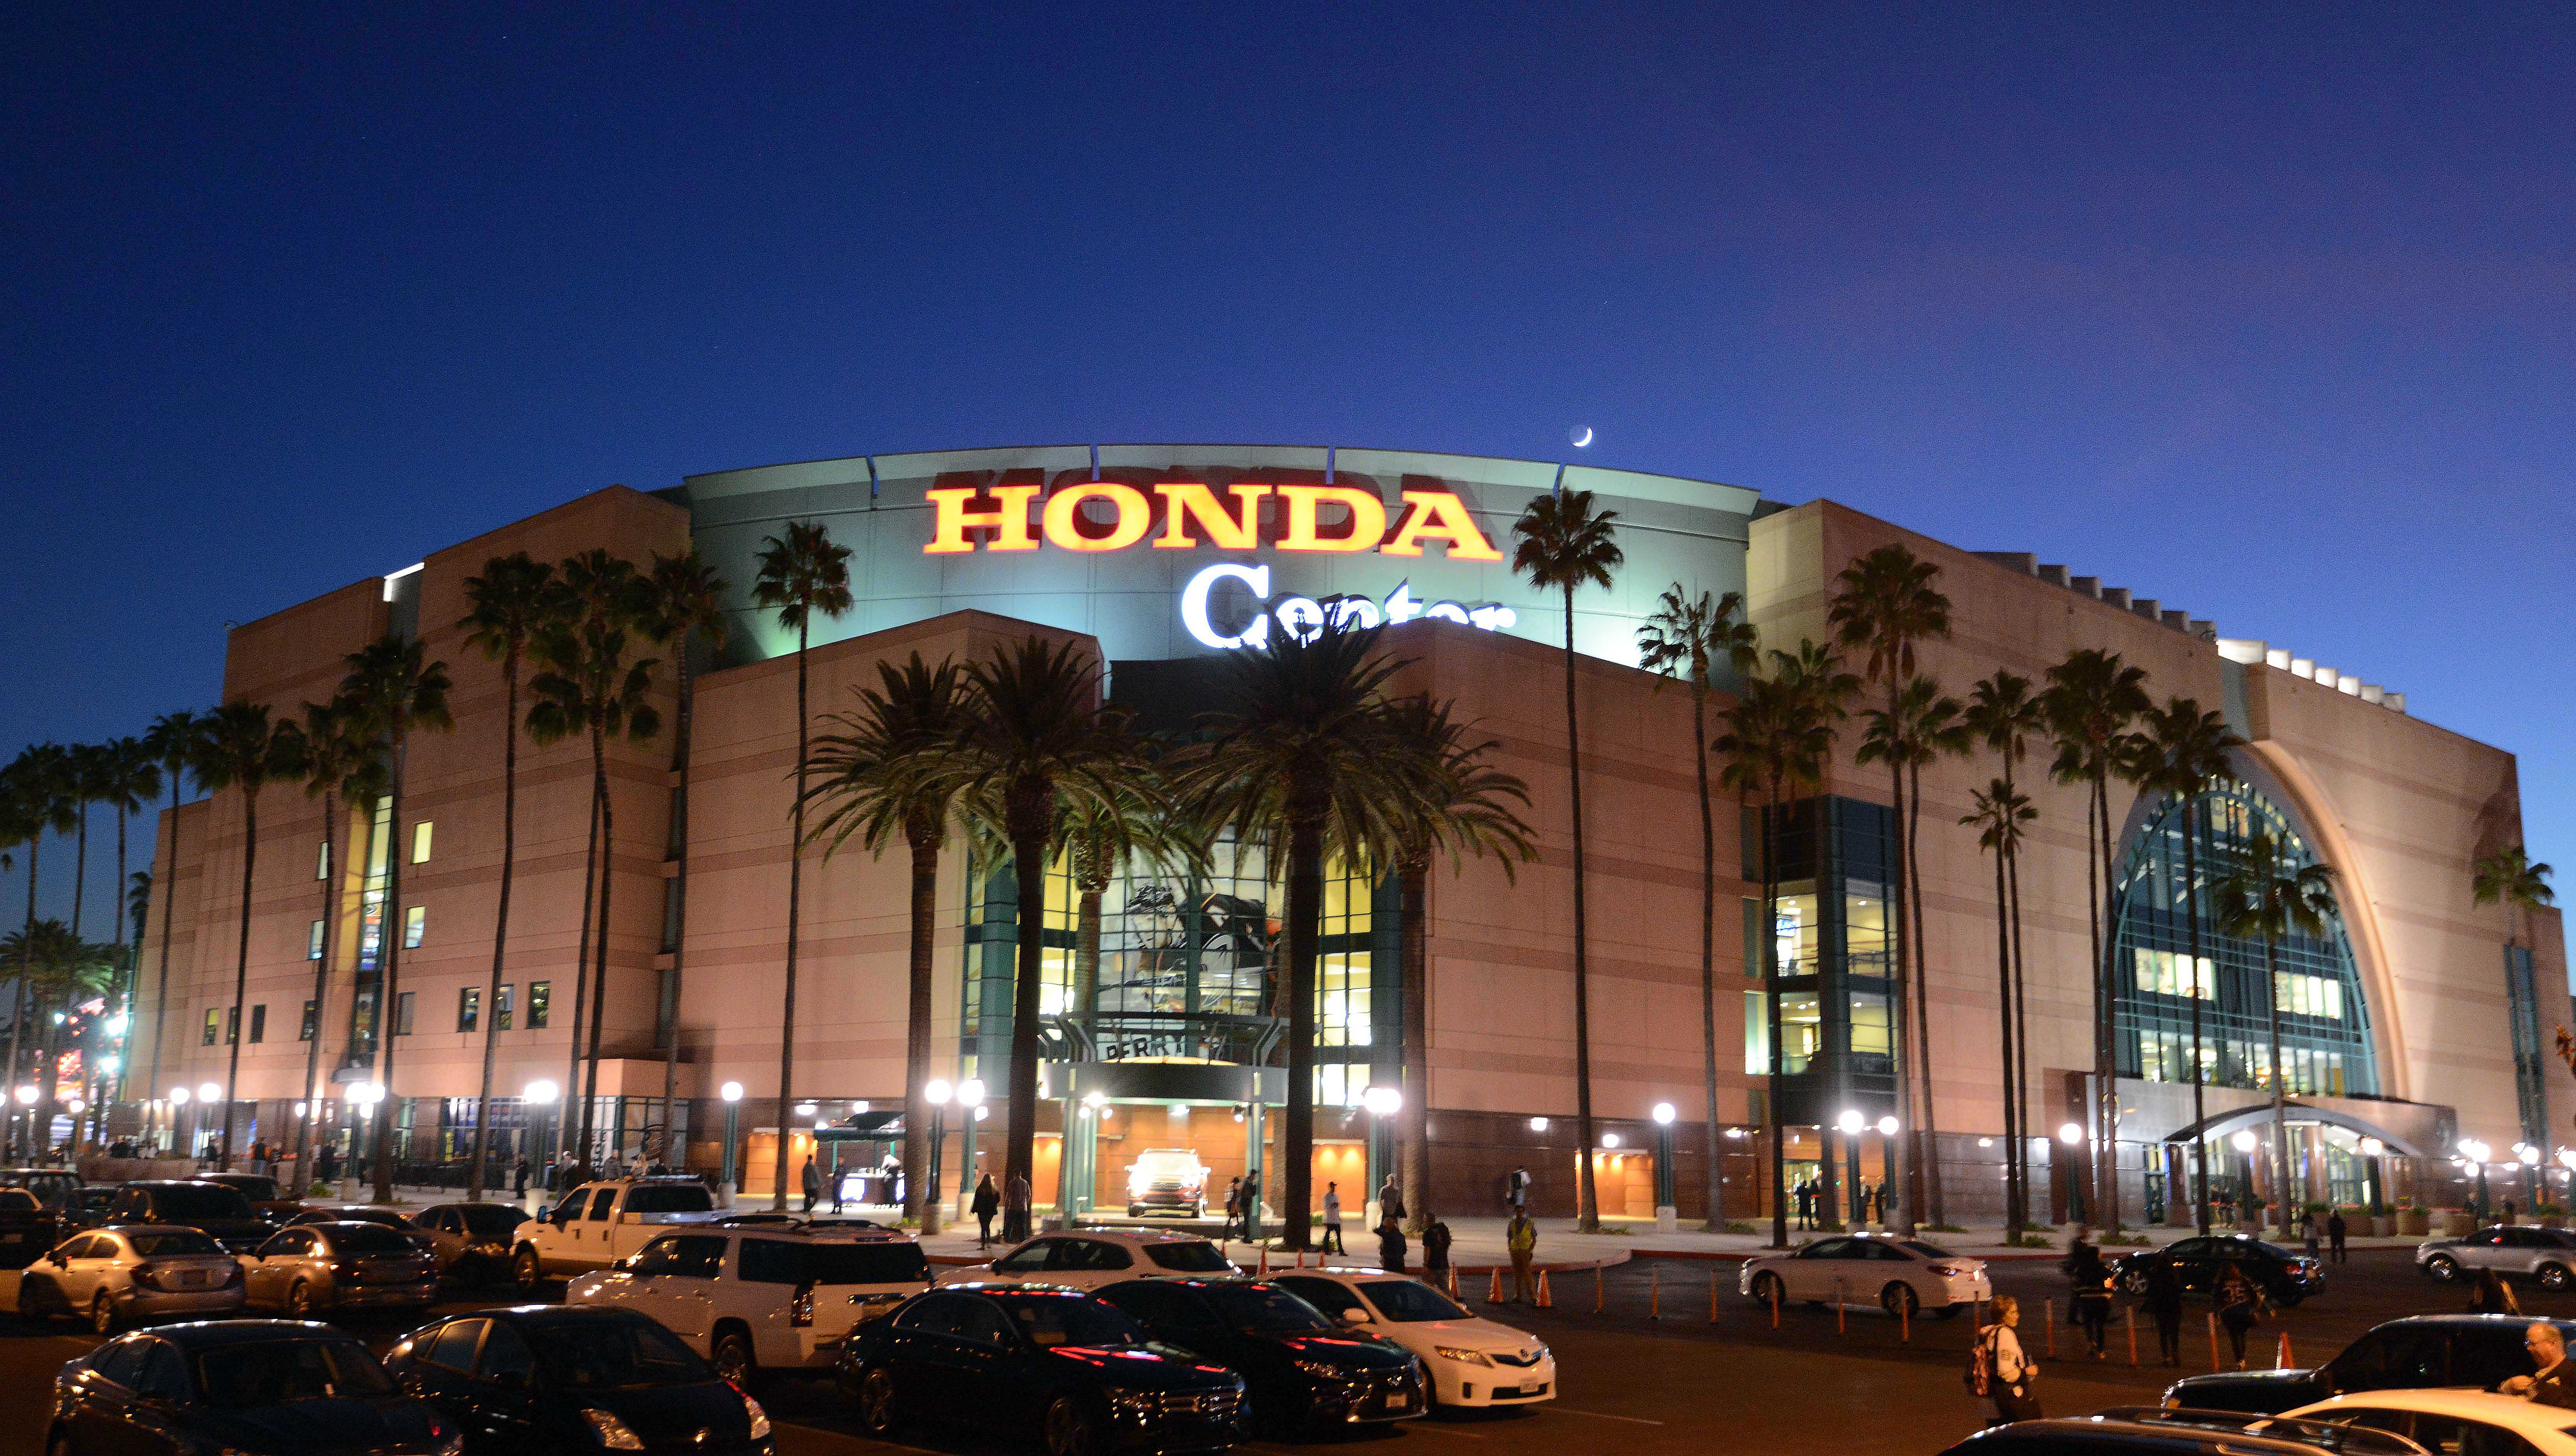 9650248-nhl-pittsburgh-penguins-at-anaheim-ducks